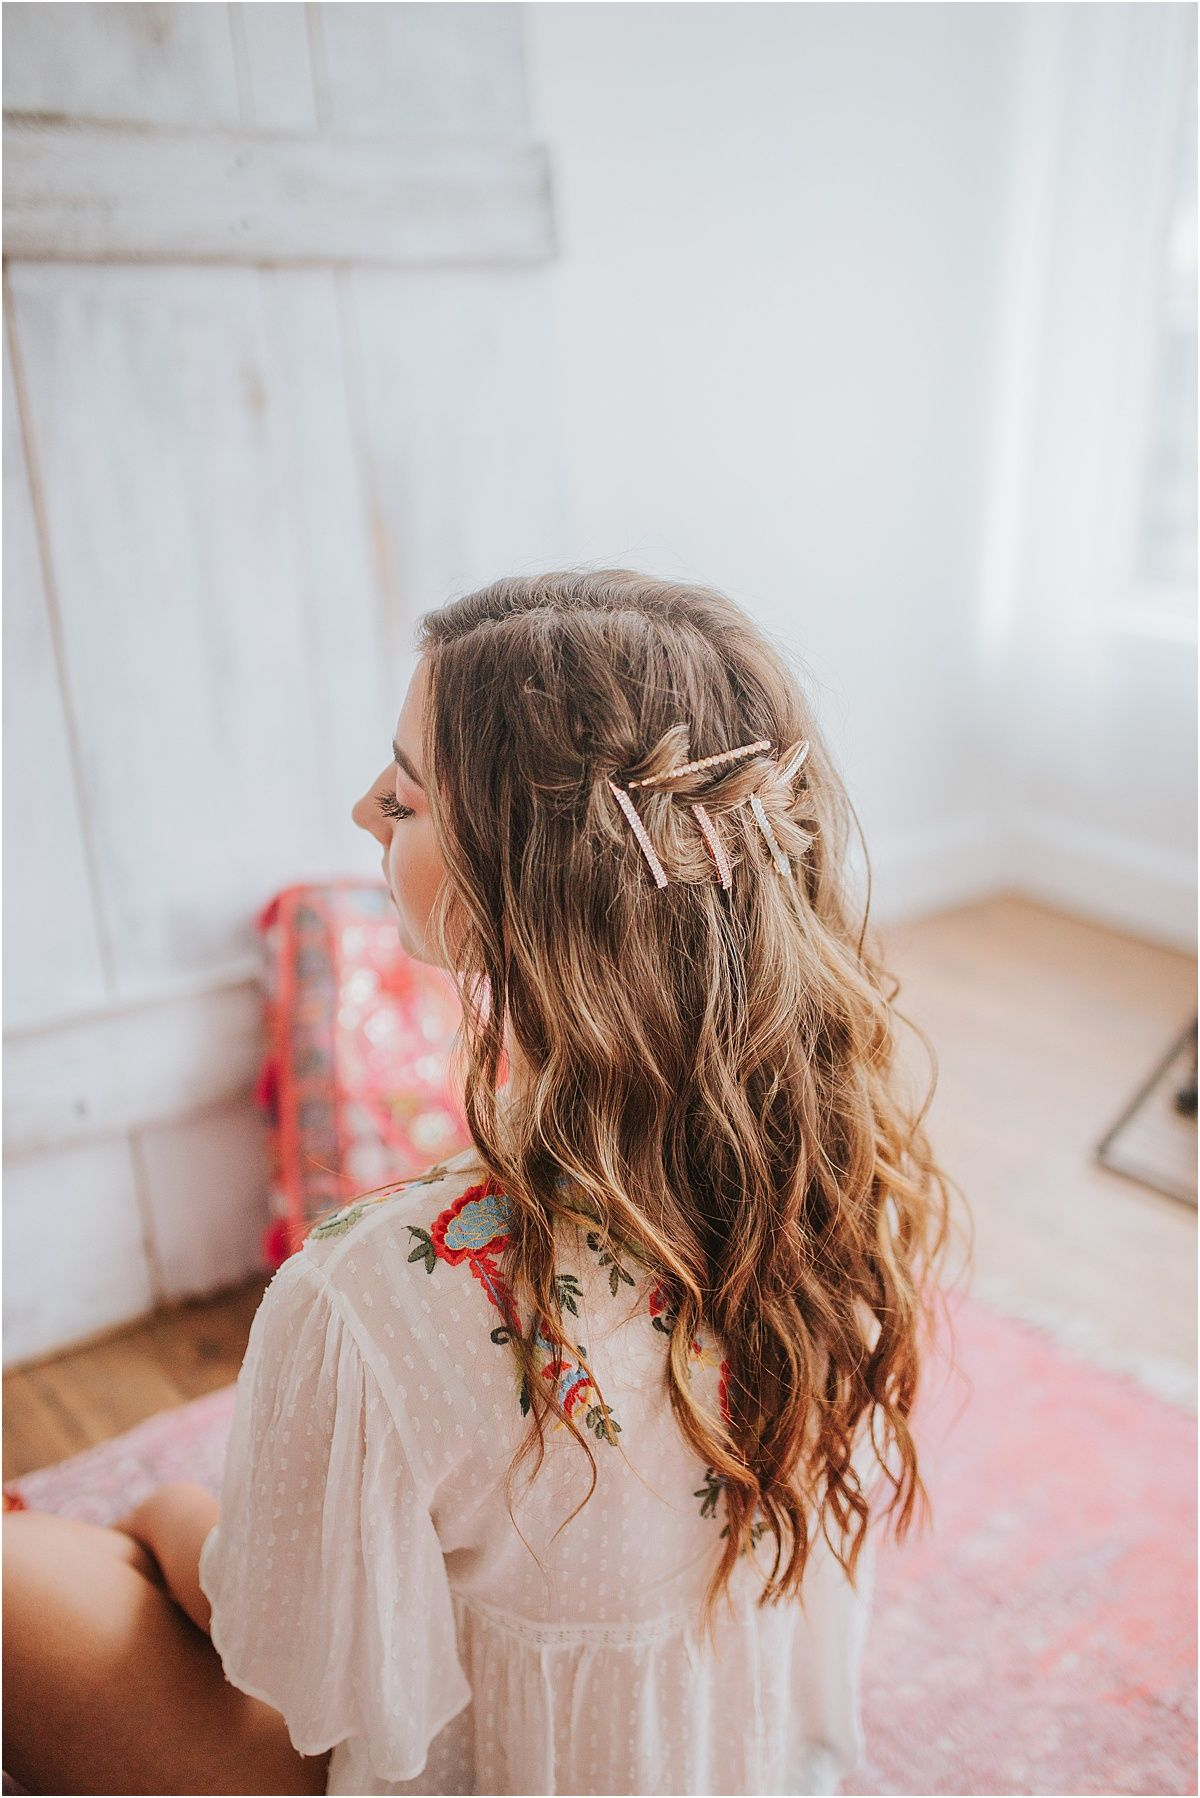 The Spring Sessions Stylized Shoot And Cute Little Animals Look For The Light Cool Hairstyles Everyday Hairstyles Cute Little Animals